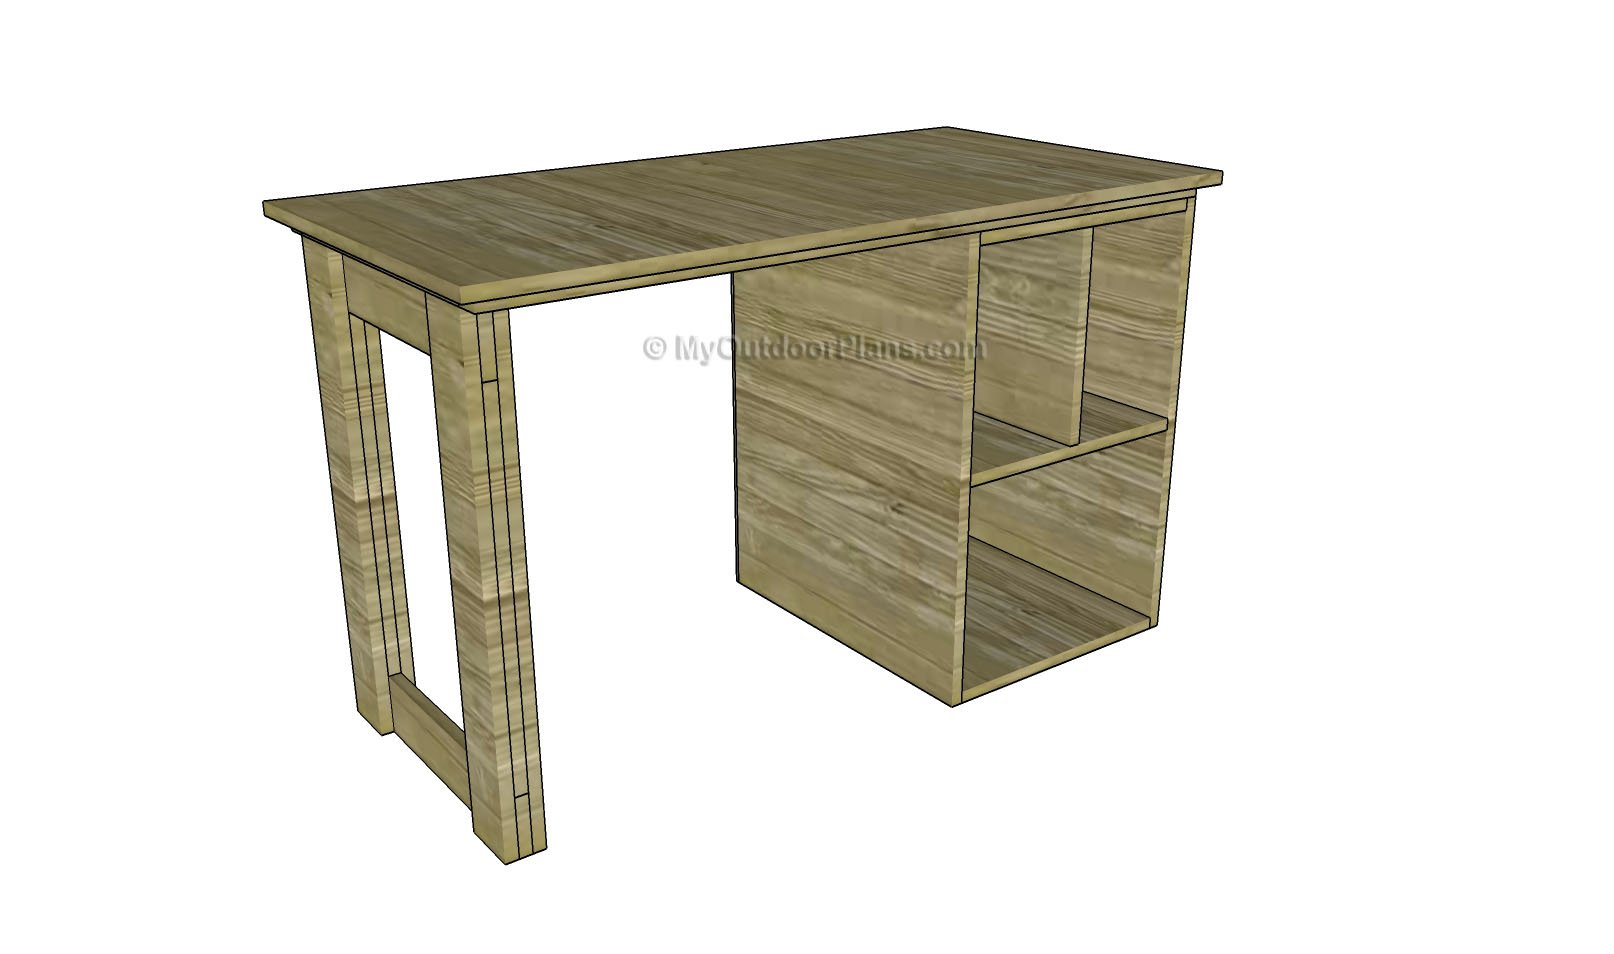 woodworking plans desk | Fabulous Woodworking Projects